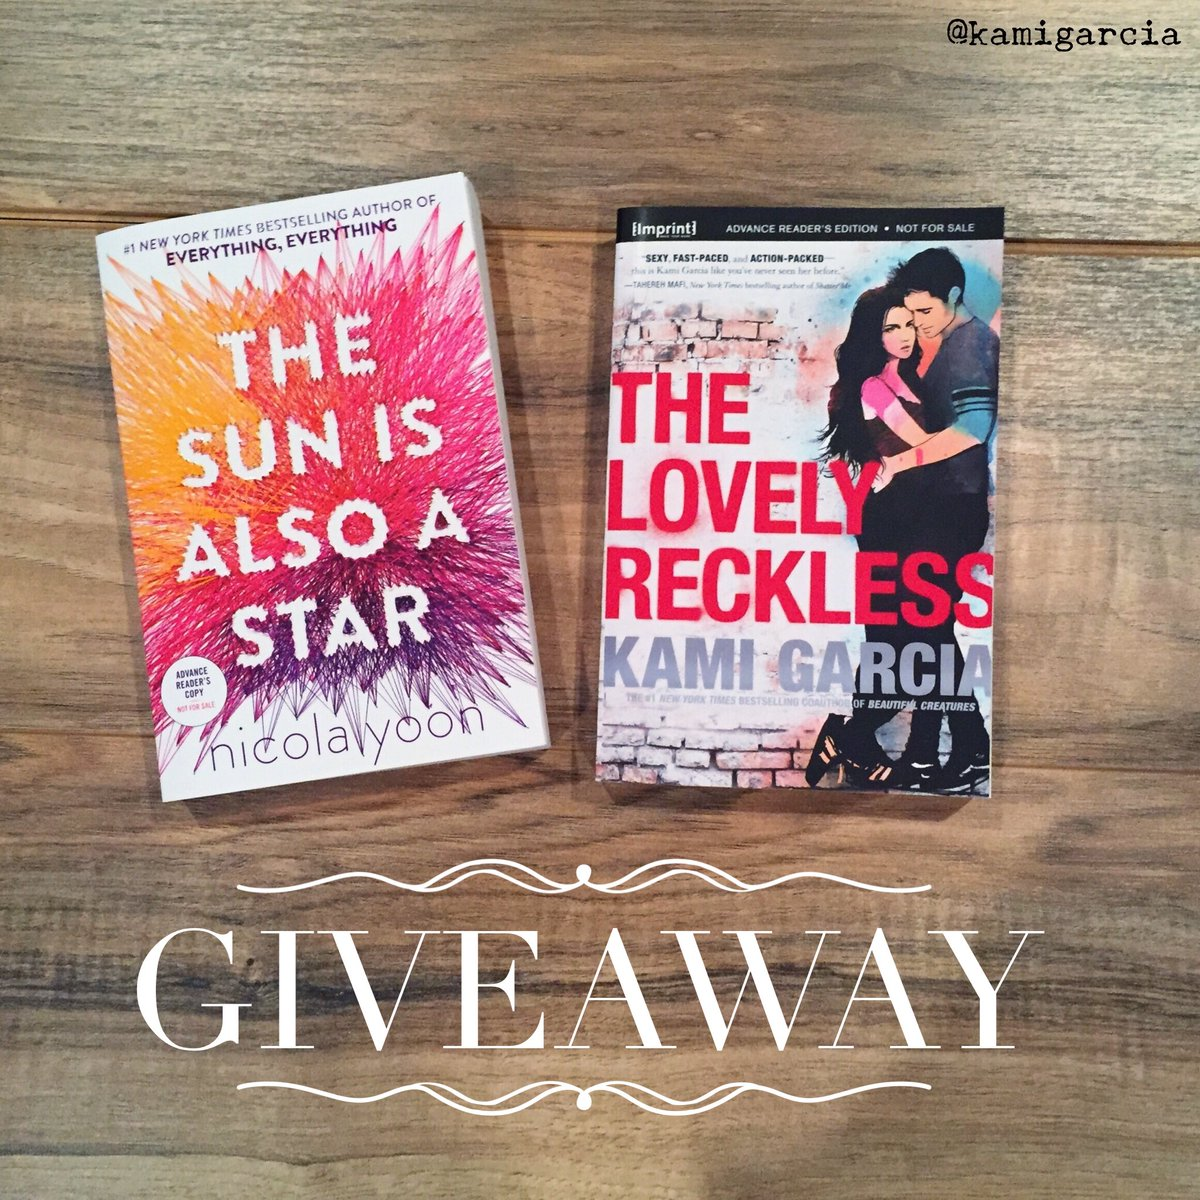 #Giveaway: Win THE SUN IS ALSO A STAR by the awesome @NicolaYoon + #TheLovelyReckless! Follow & RT, ends 9/16. US. https://t.co/DnYA8NBu8G